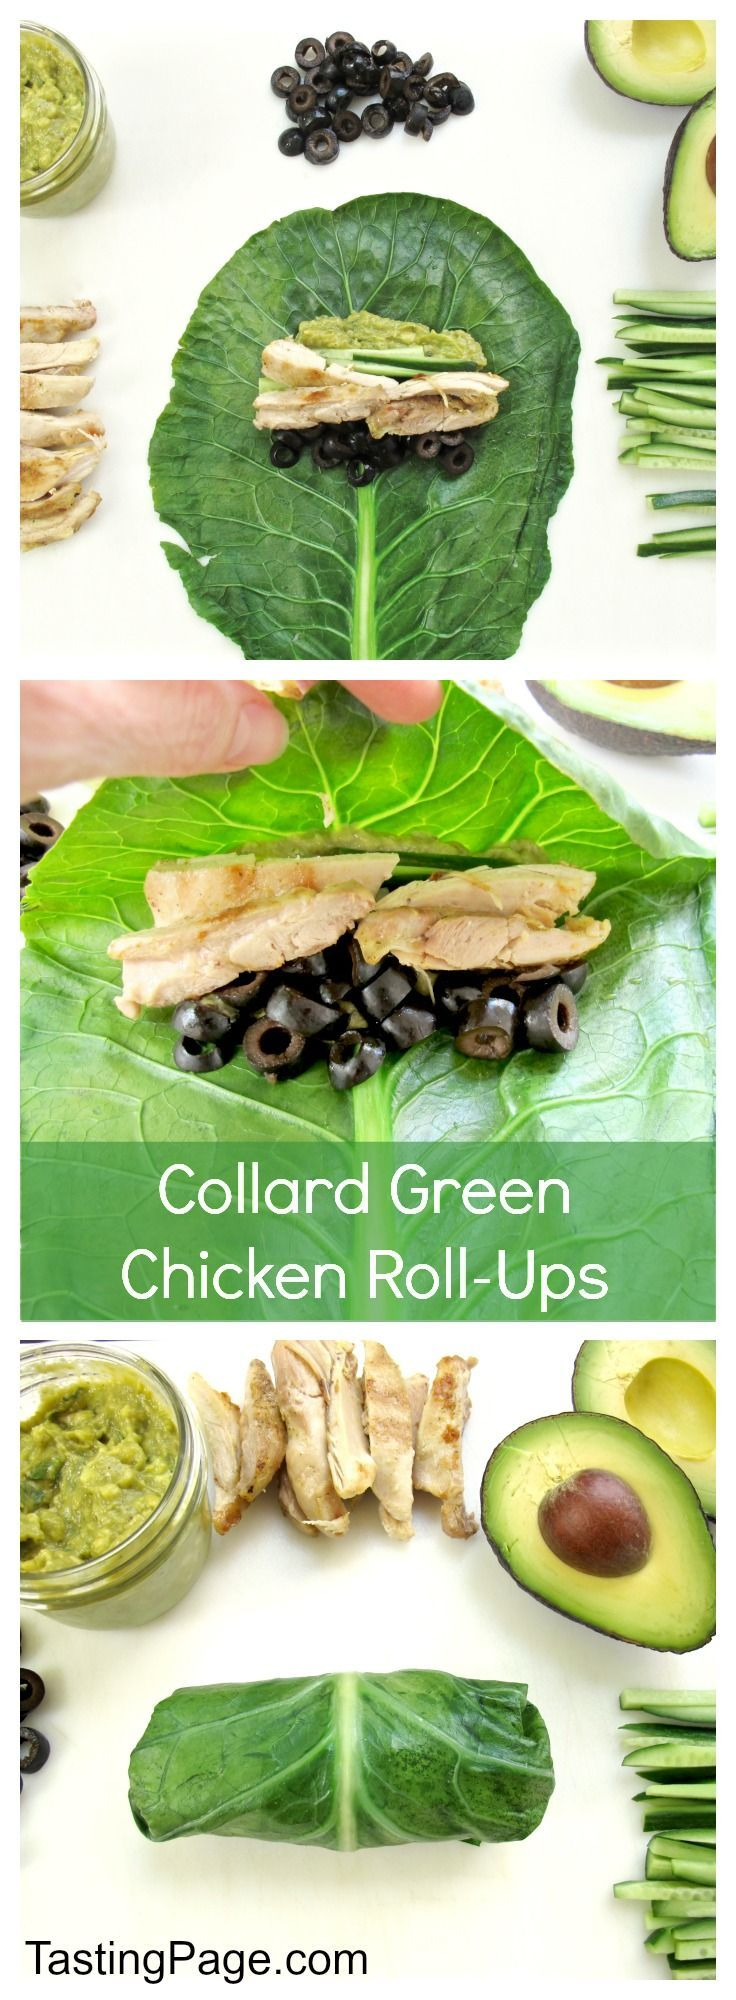 Gluten Free Collard Green Chicken Roll Ups - all your favorite burrito ingredients in a blanched healthy collard green wrapper with chicken, vegetables and fresh guacamole - gluten free and dairy free | TastingPage.com